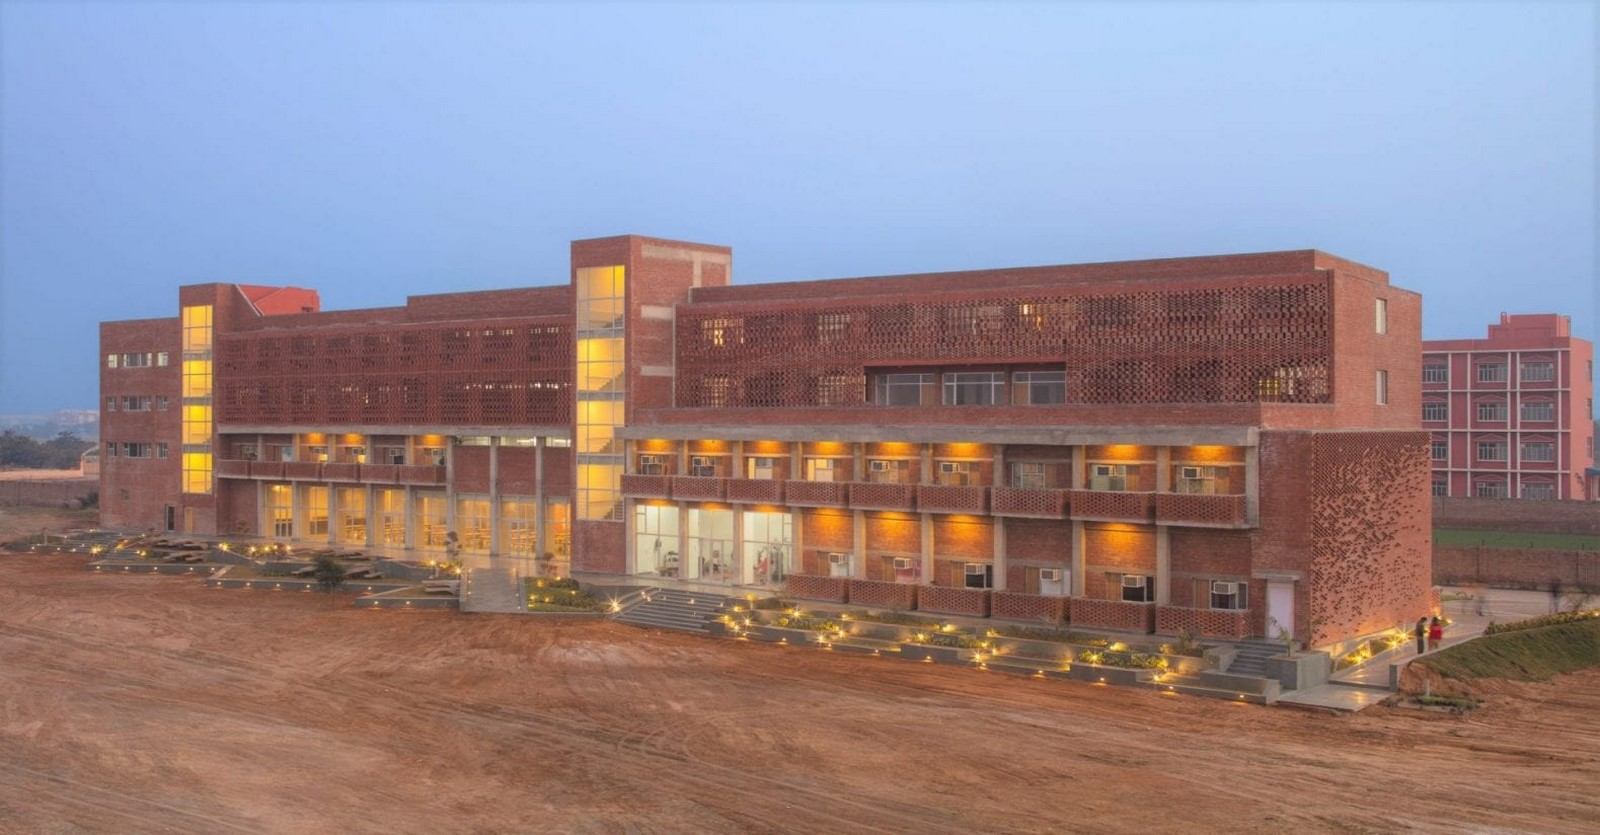 India's St. Andrews boys hostel designed with sustainability in mind by by ZED Lab - Sheet1